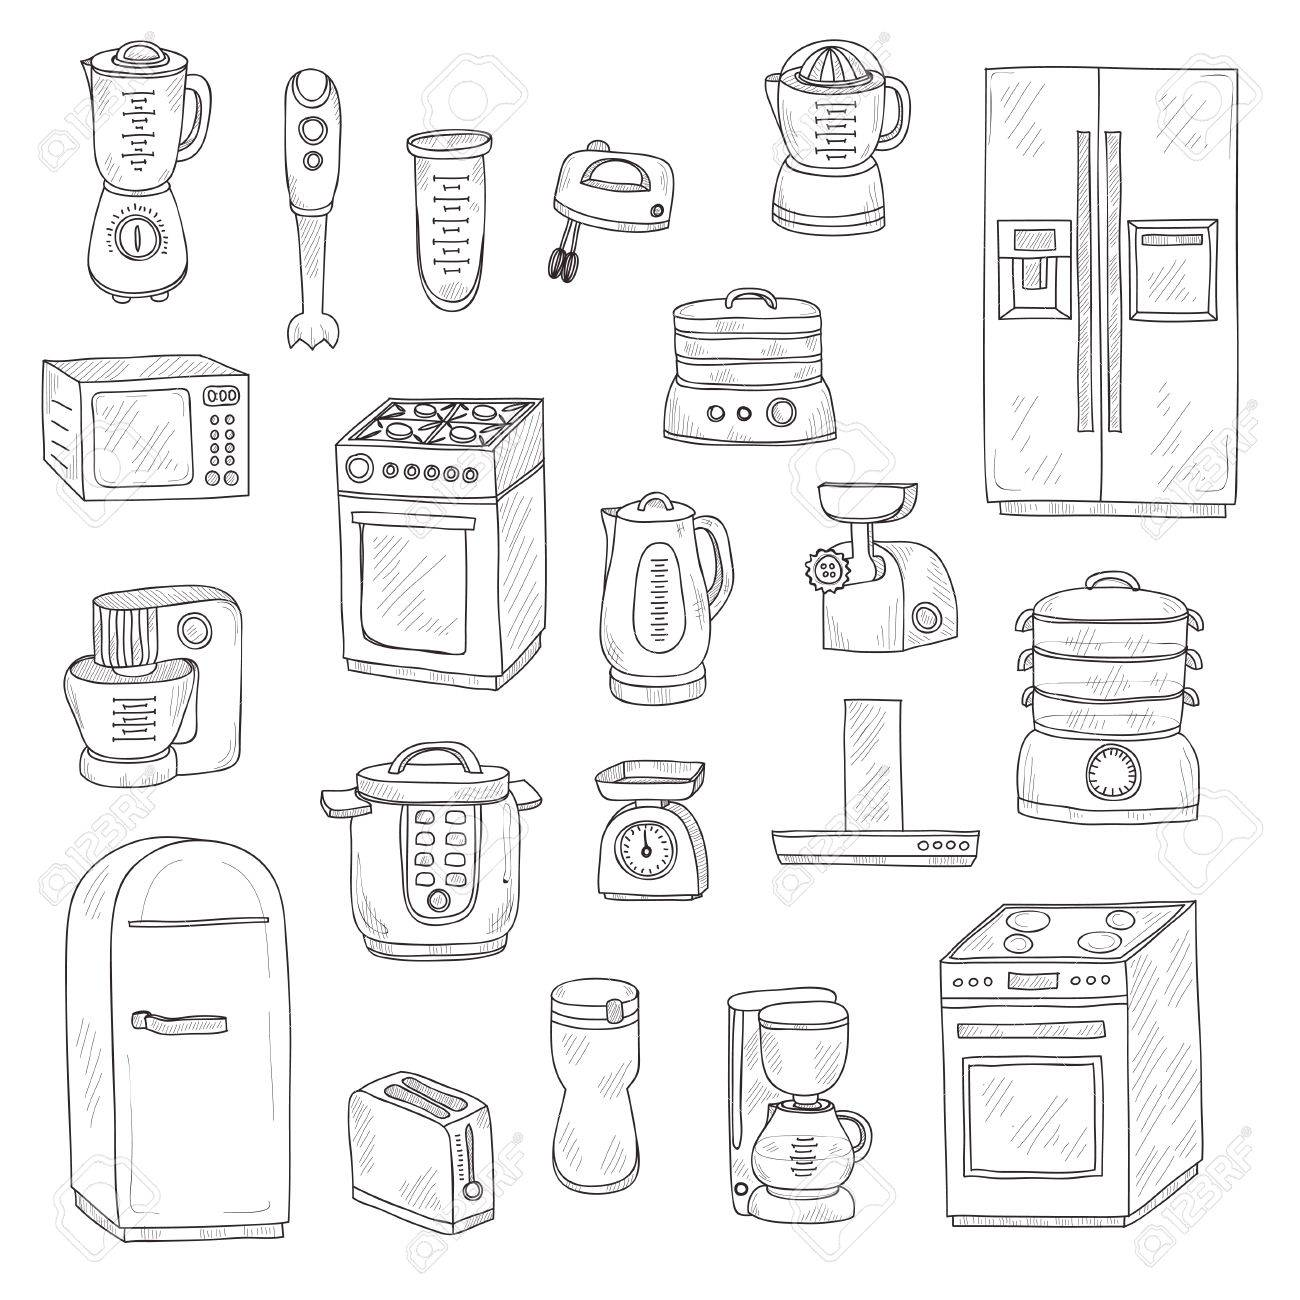 Uncategorized Cute Kitchen Appliances set of cute kitchen appliances collection royalty free stock vector 53168860